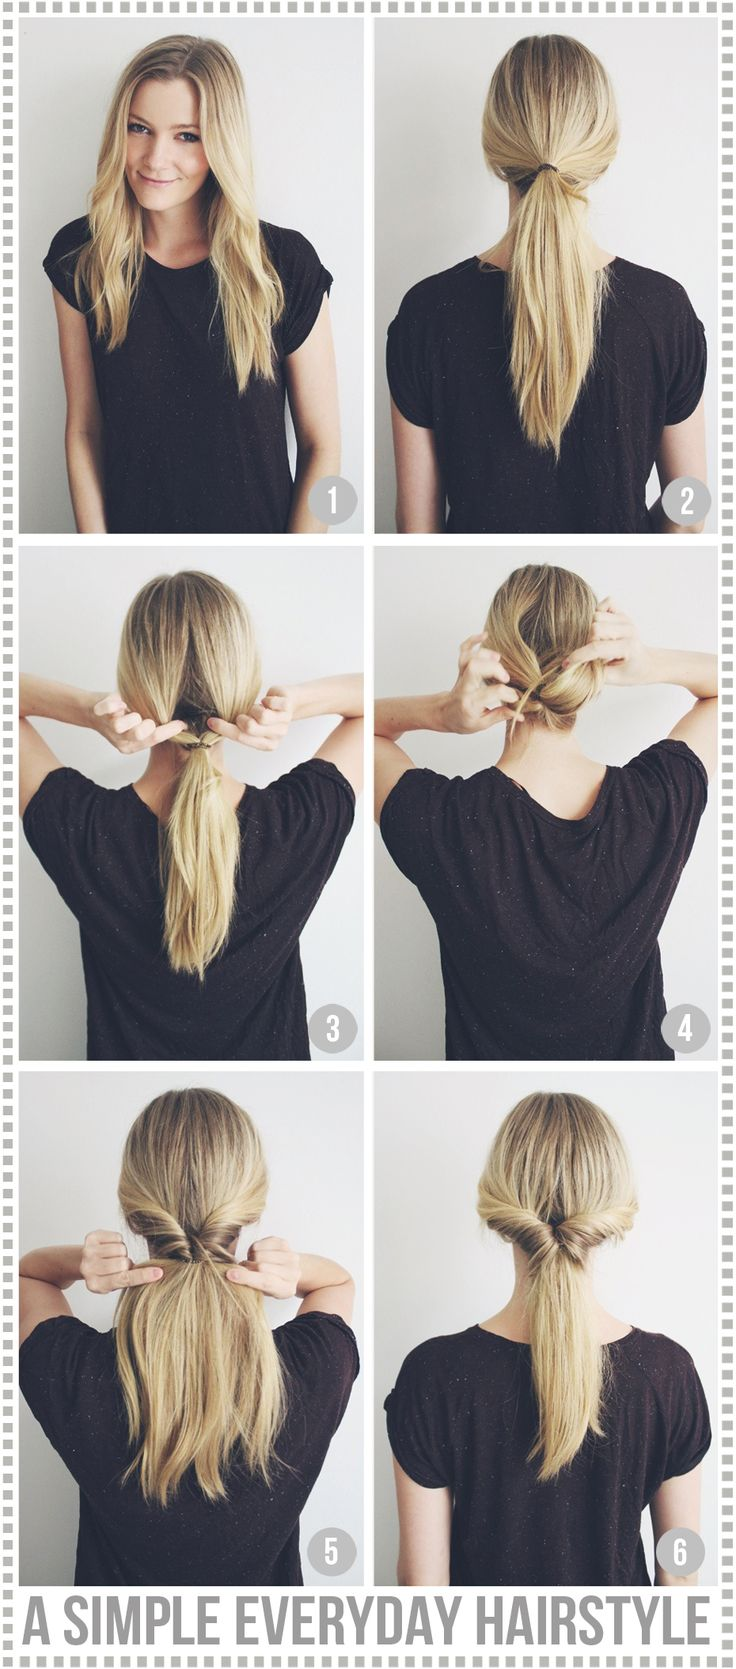 best 25+ simple everyday hairstyles ideas on pinterest | easy